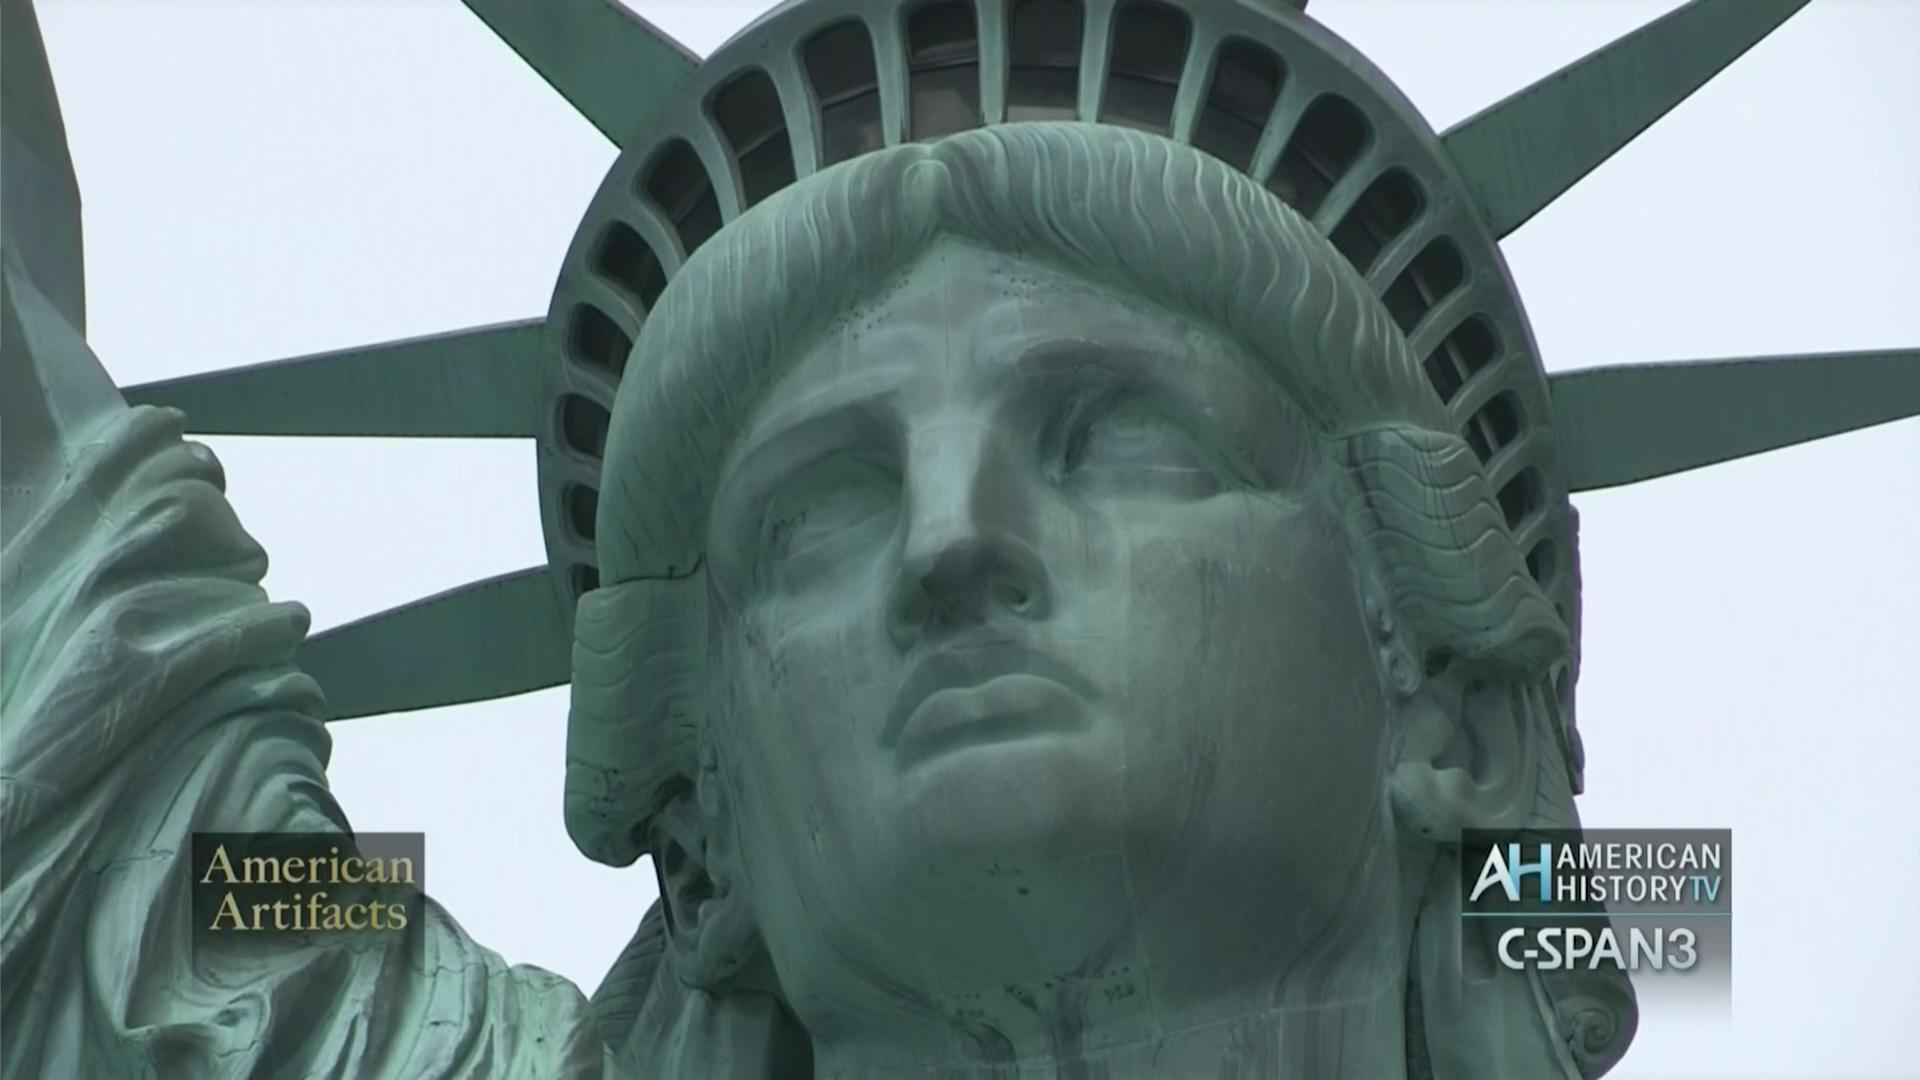 Statue liberty national monument jul 14 2016 video c span biocorpaavc Image collections